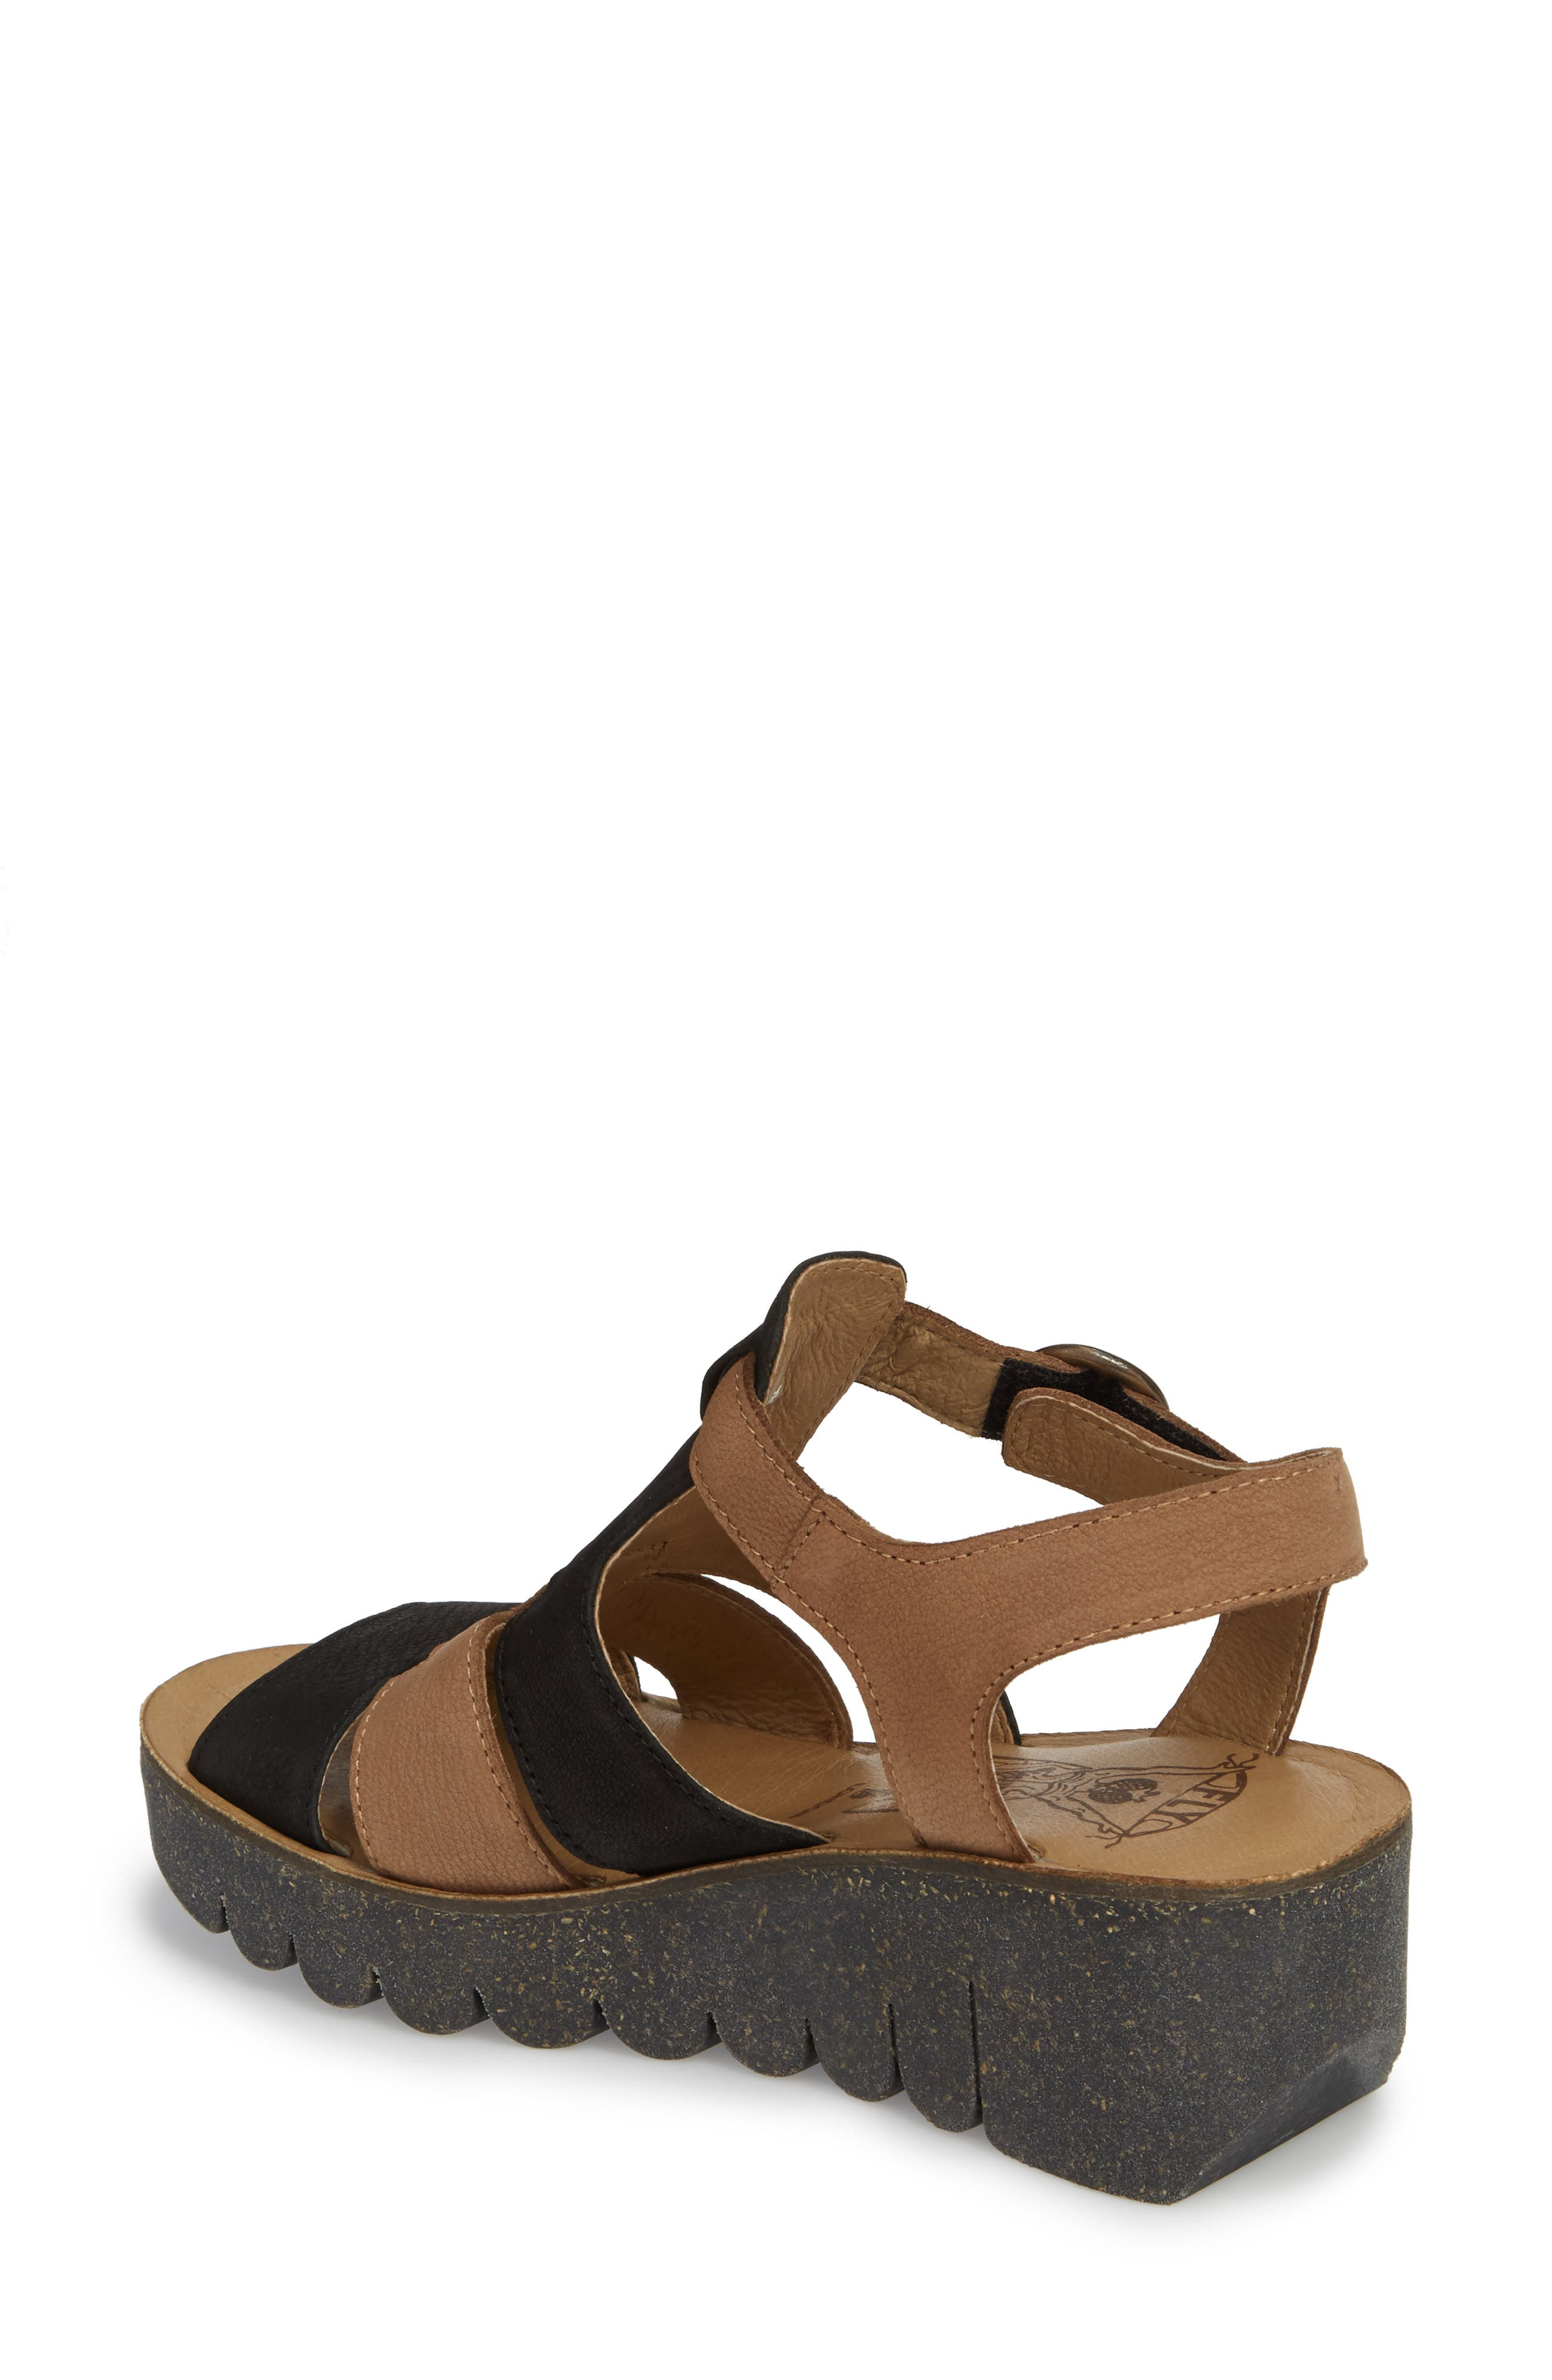 Yuni Wedge Sandal,                             Alternate thumbnail 2, color,                             Black/ Sand Cupido Leather